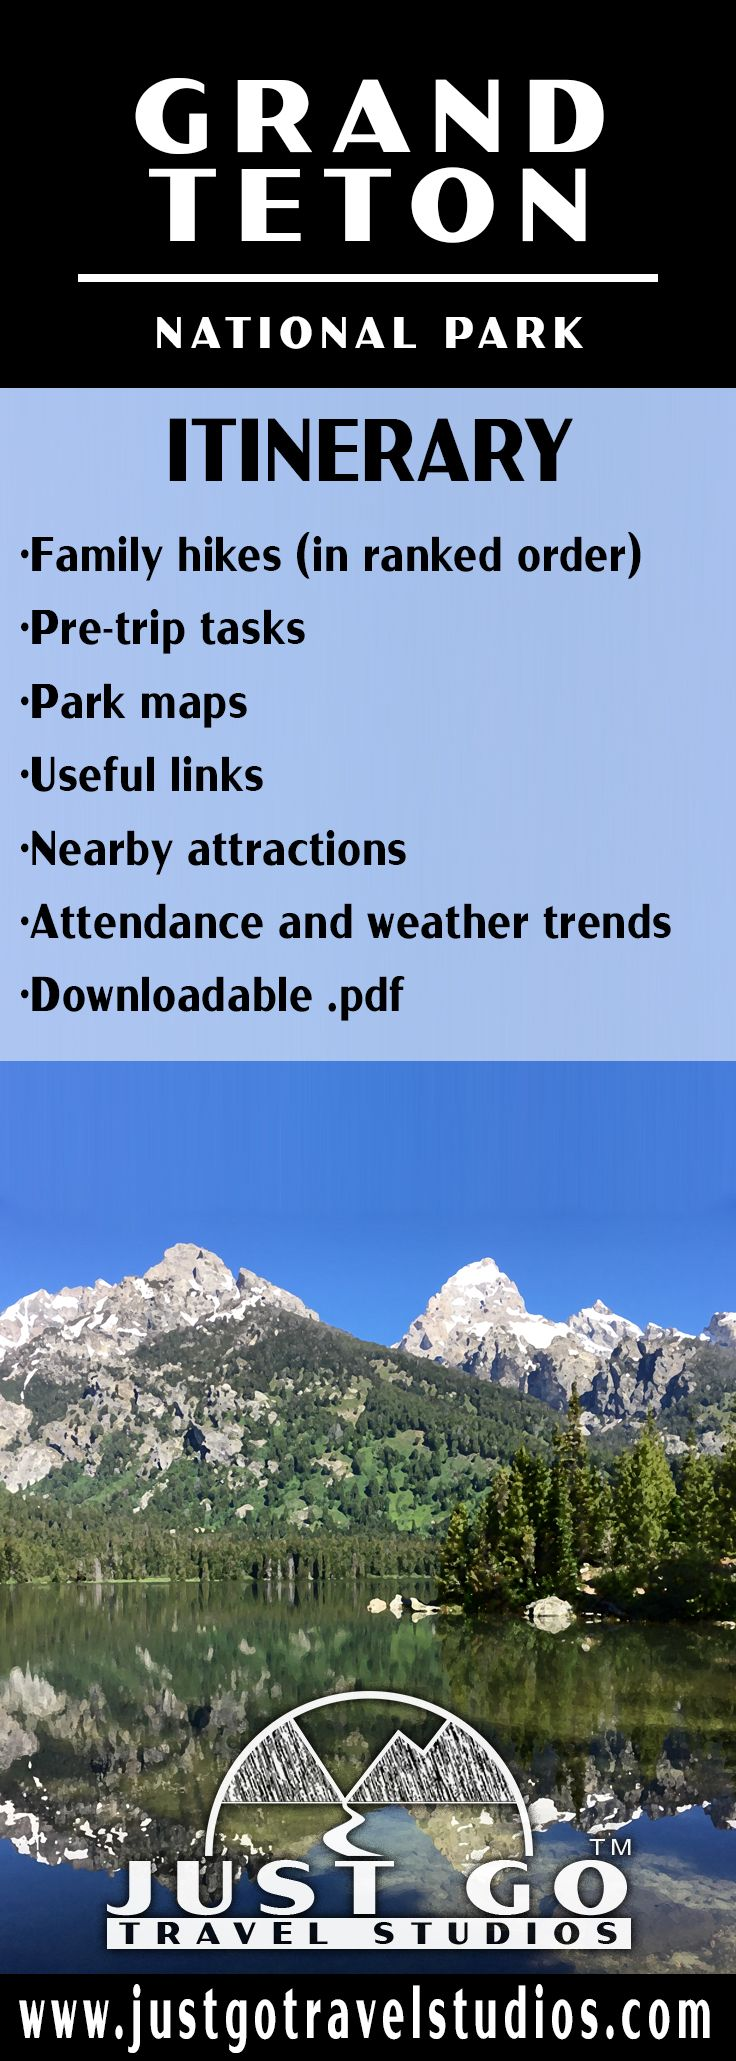 Grand Teton National Park Itinerary #vacationlooks